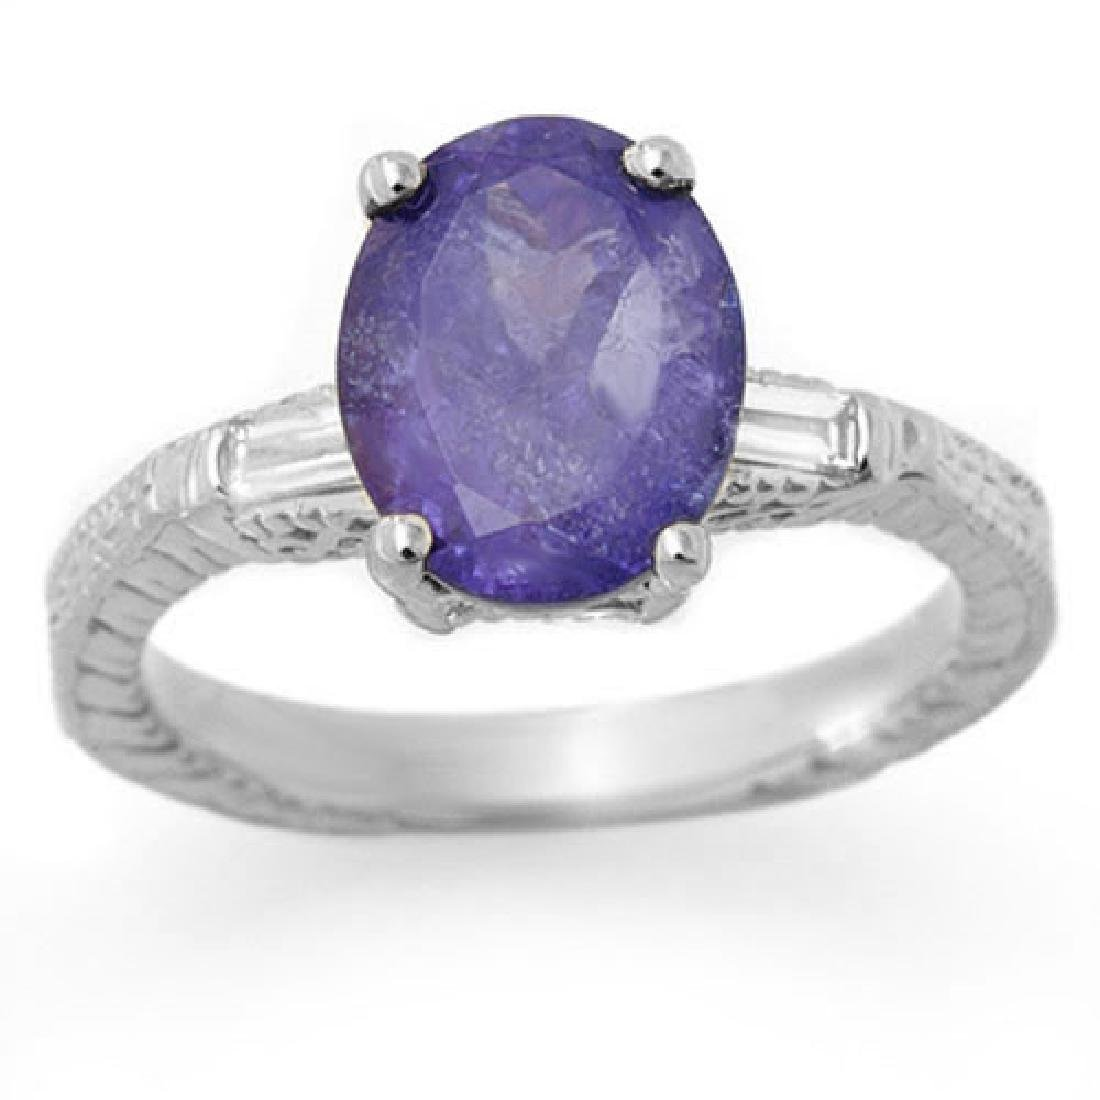 3.70 CTW Tanzanite & Diamond Ring 14K White Gold